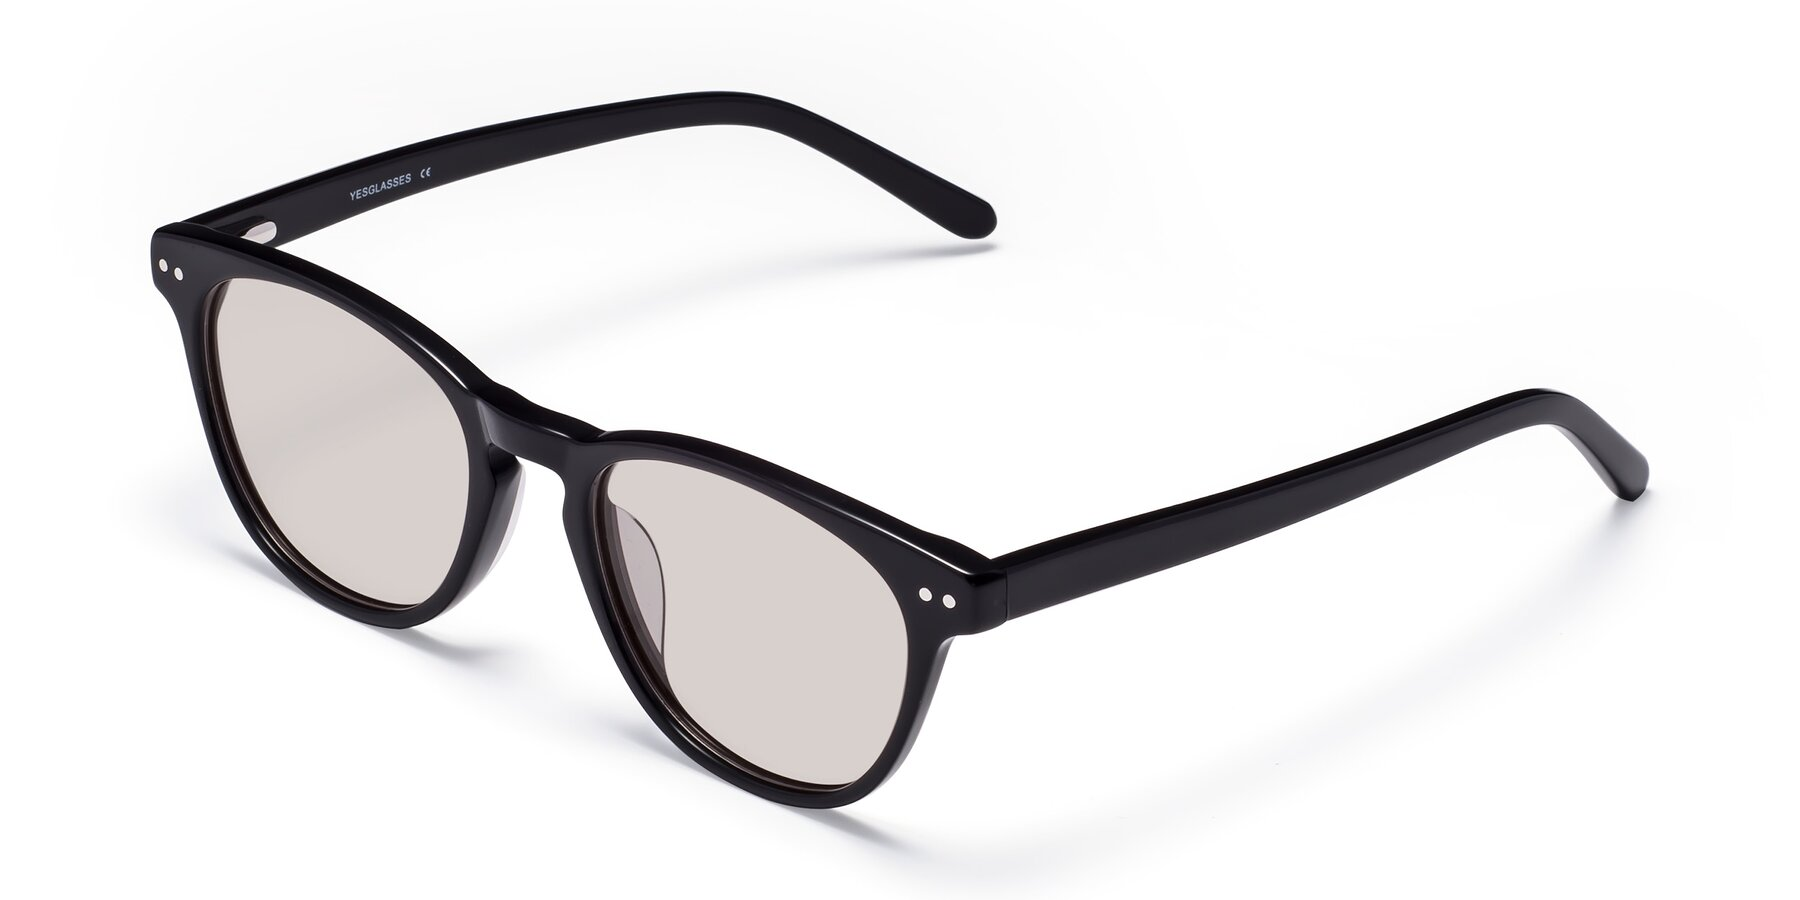 Angle of Blaze in Black with Light Brown Tinted Lenses